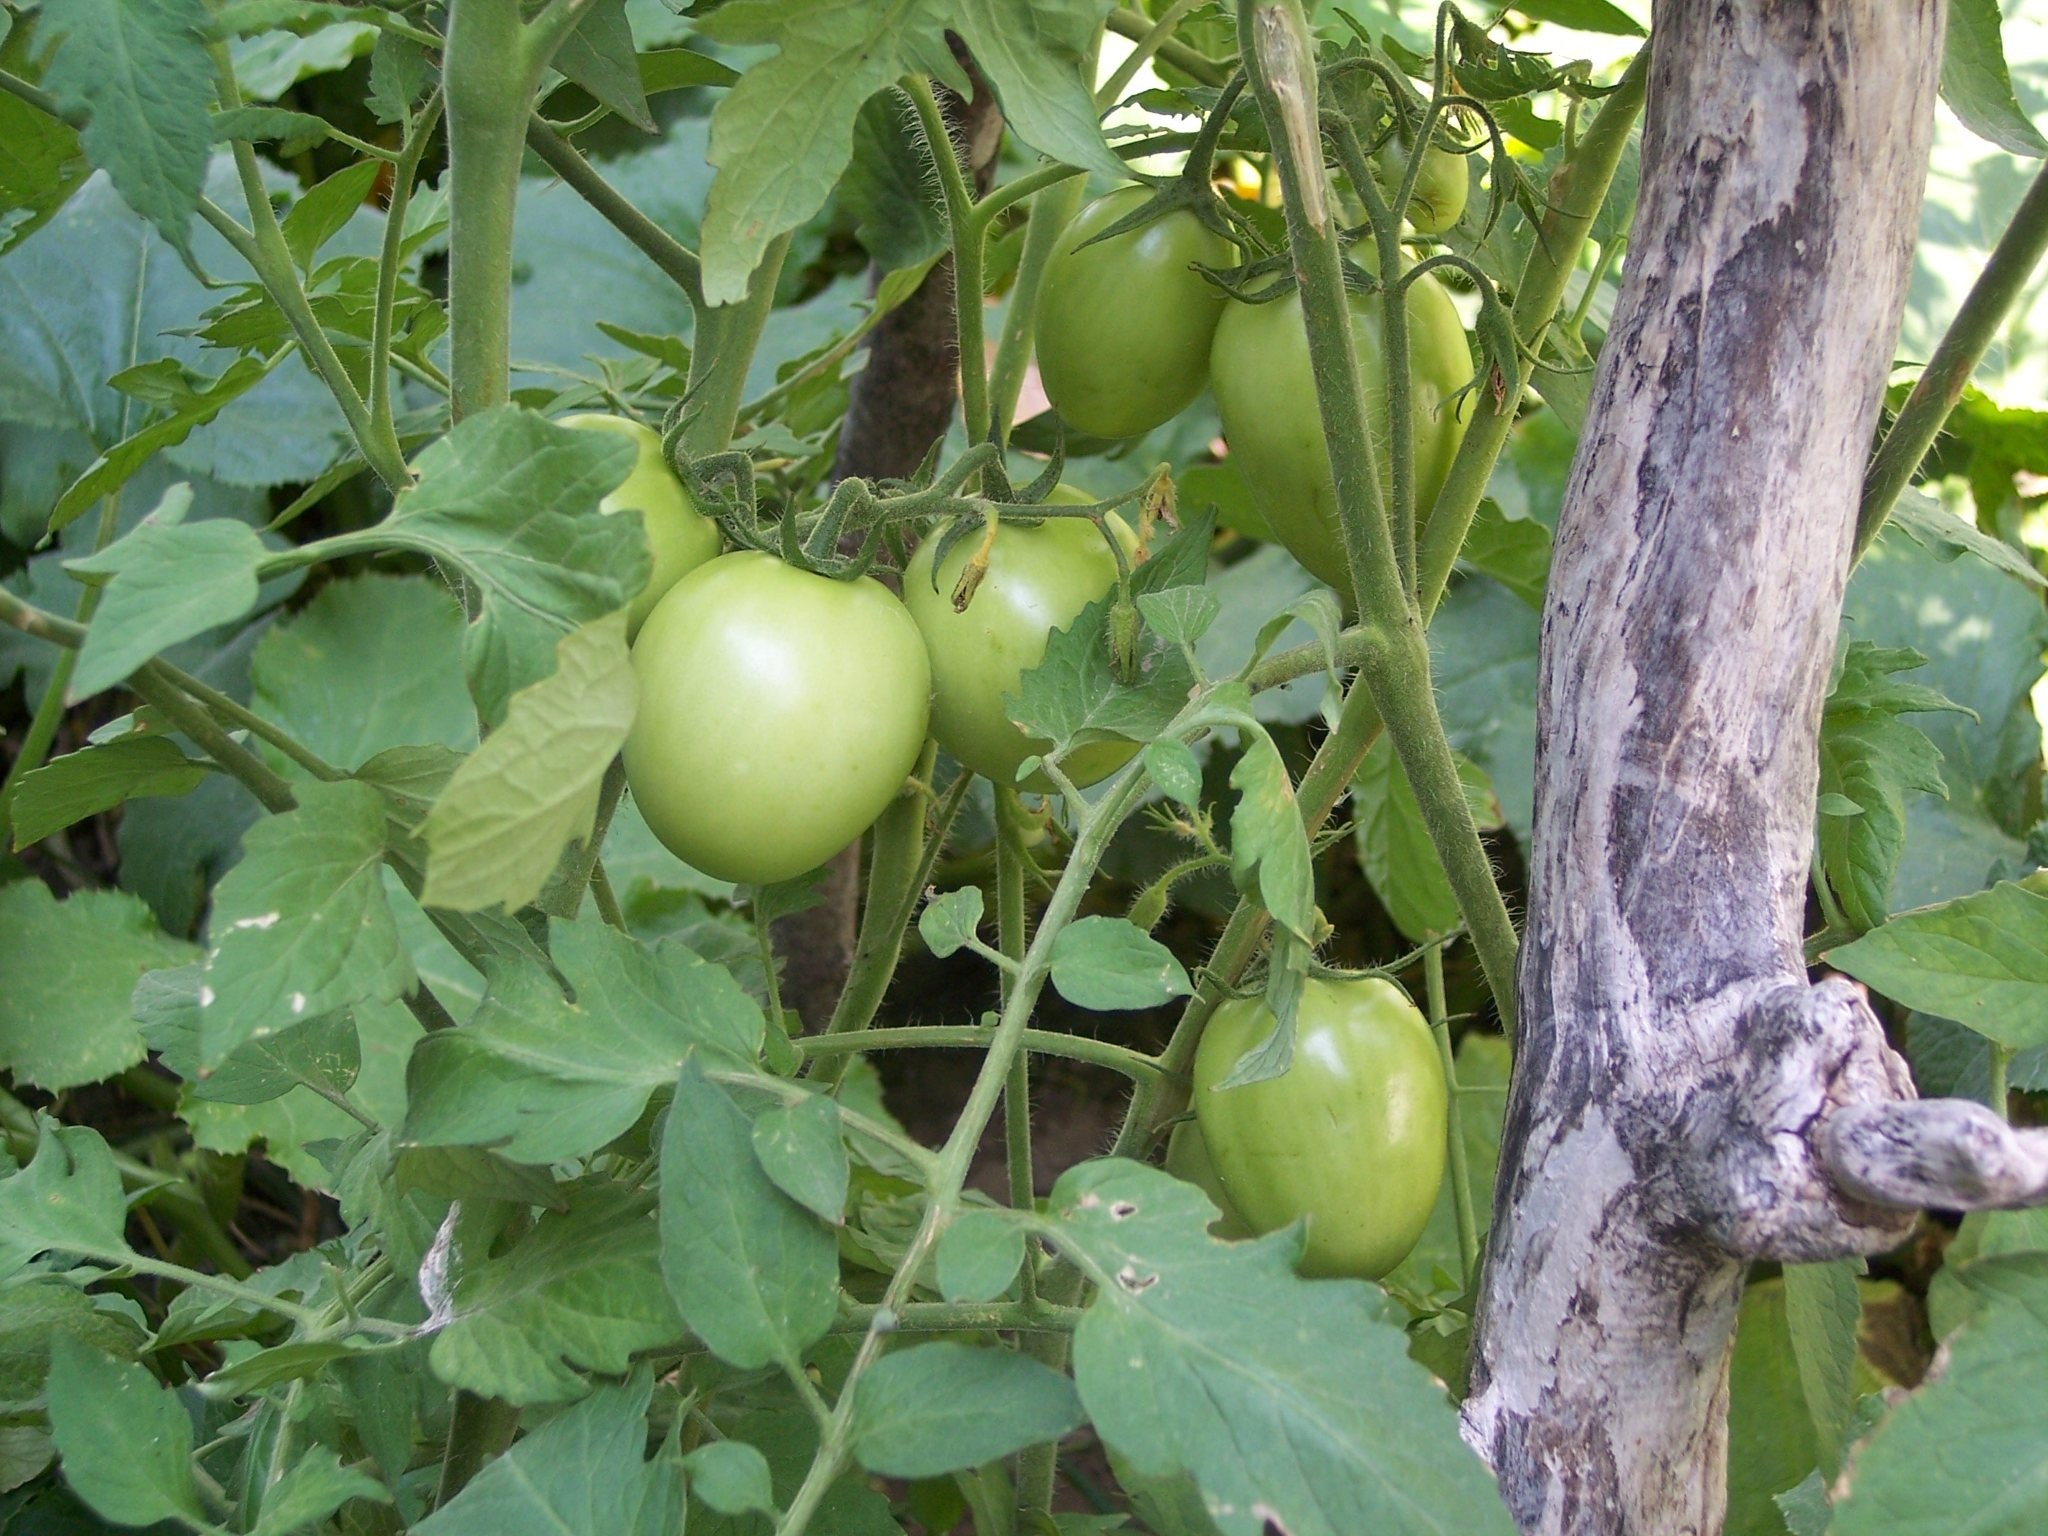 Day 127 Tomatoes